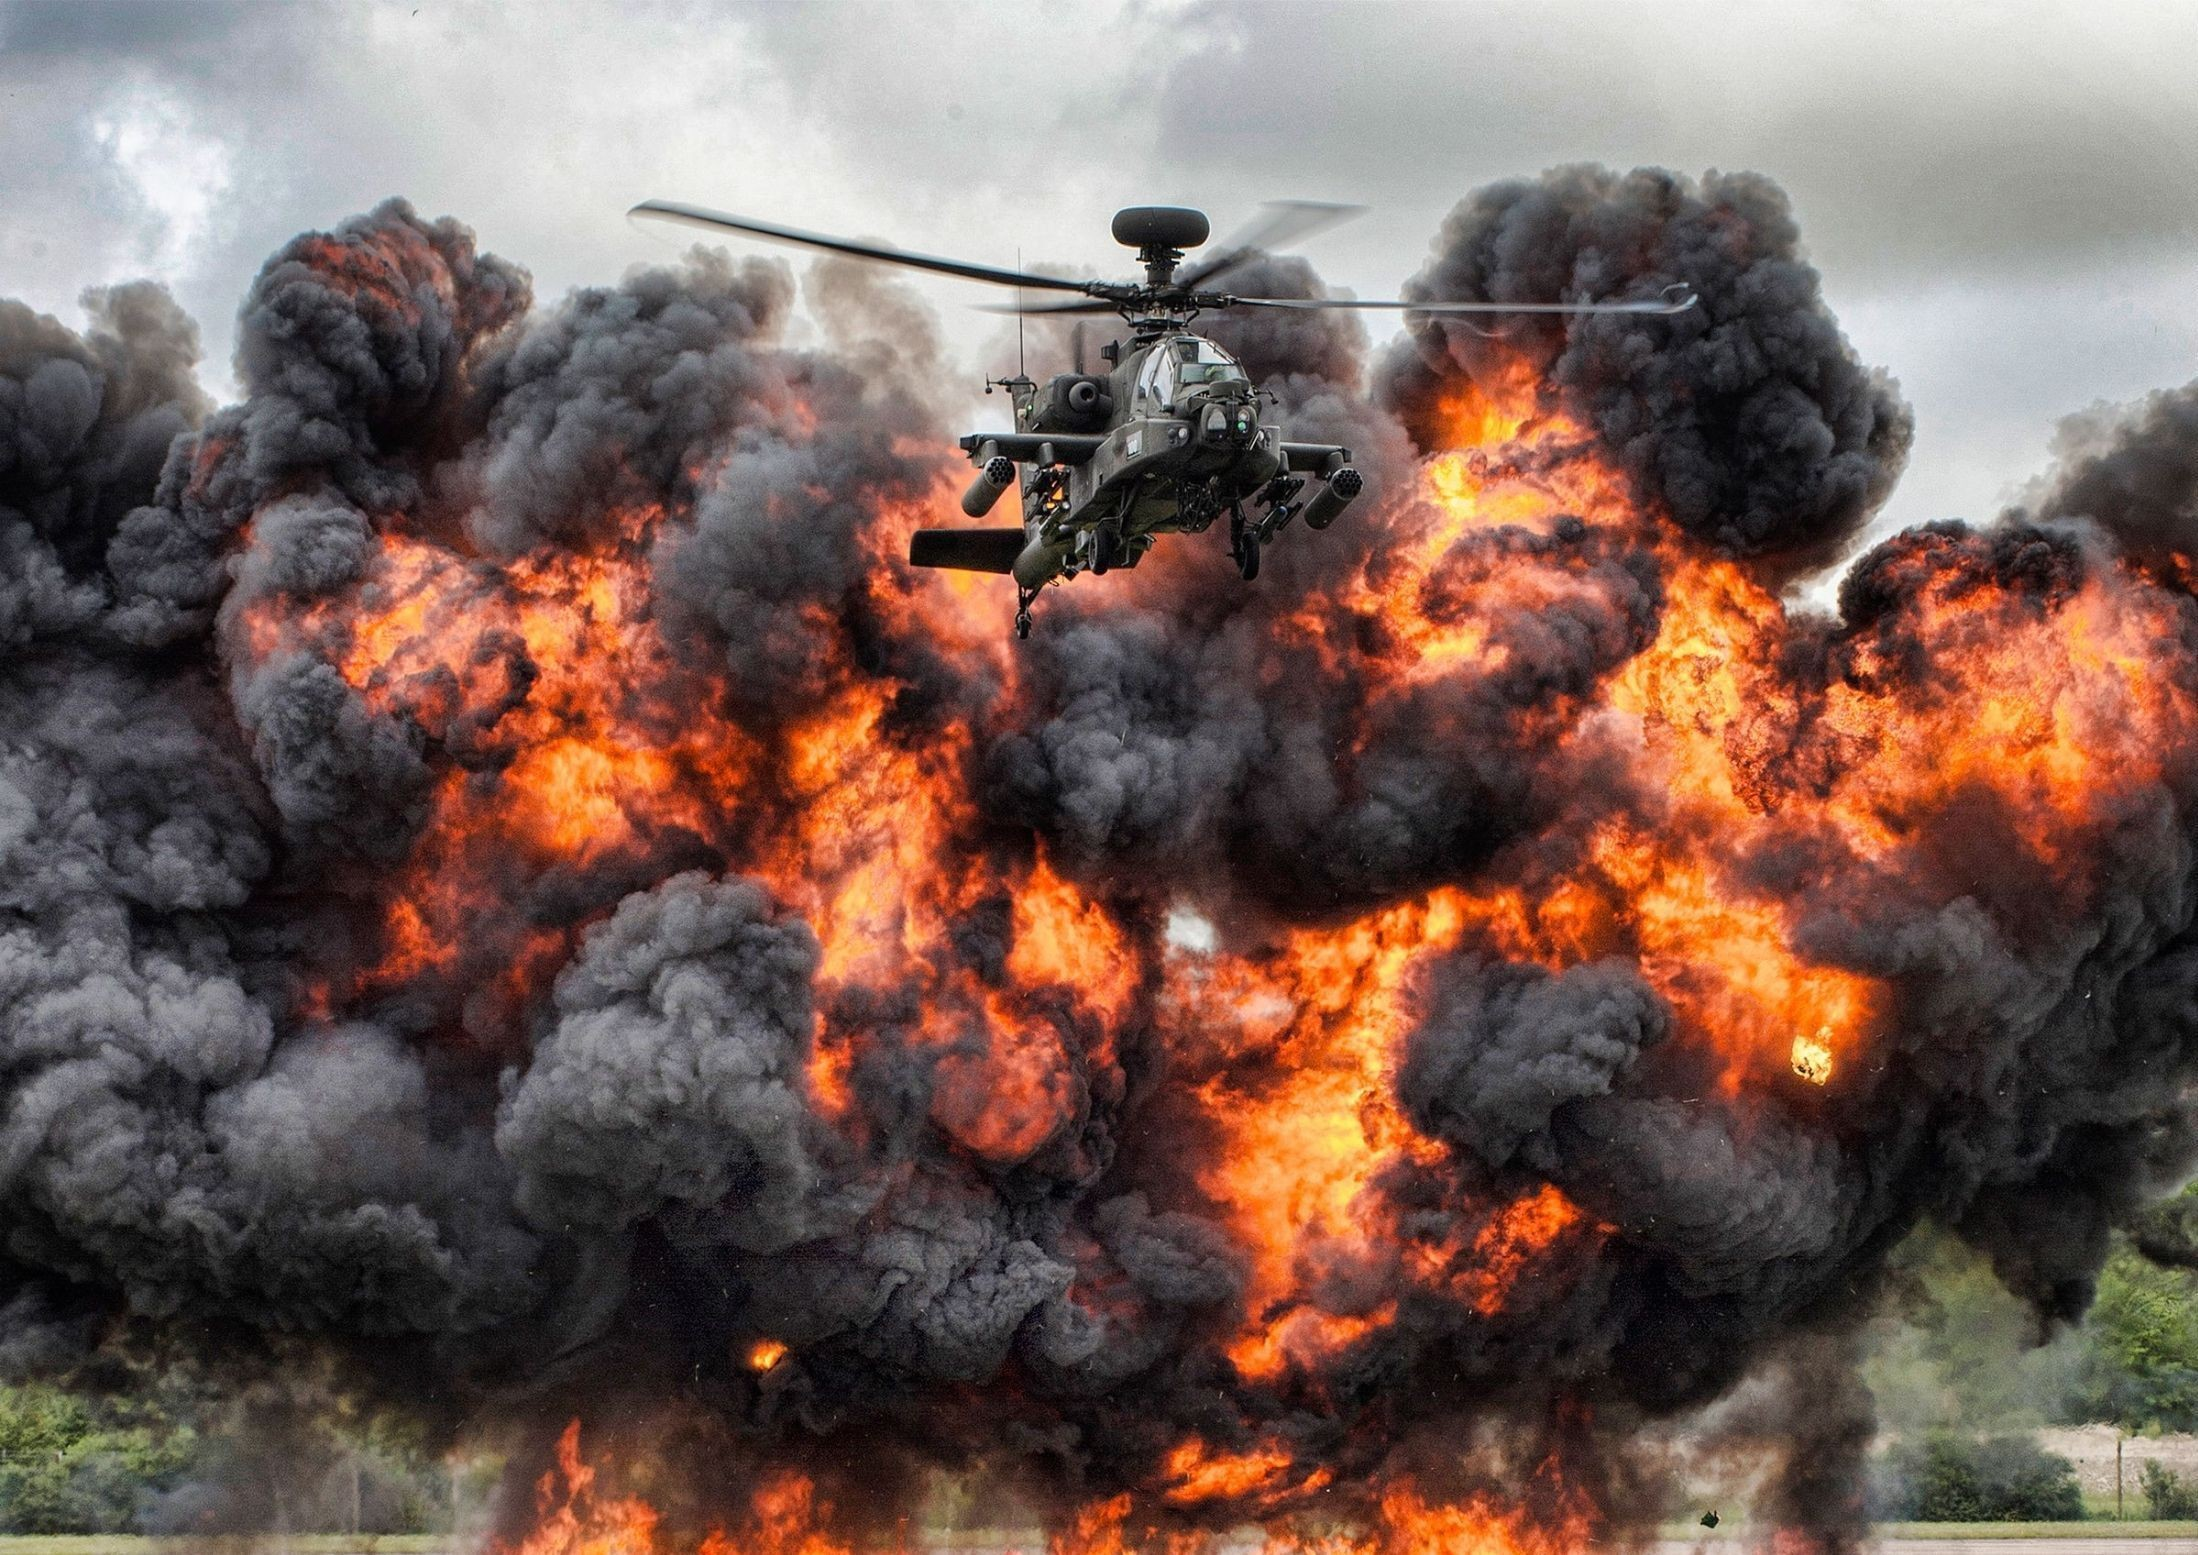 'Fireball Flyers' by Corporal Jamie Peters which won Best Overall Image as voted for by the public.